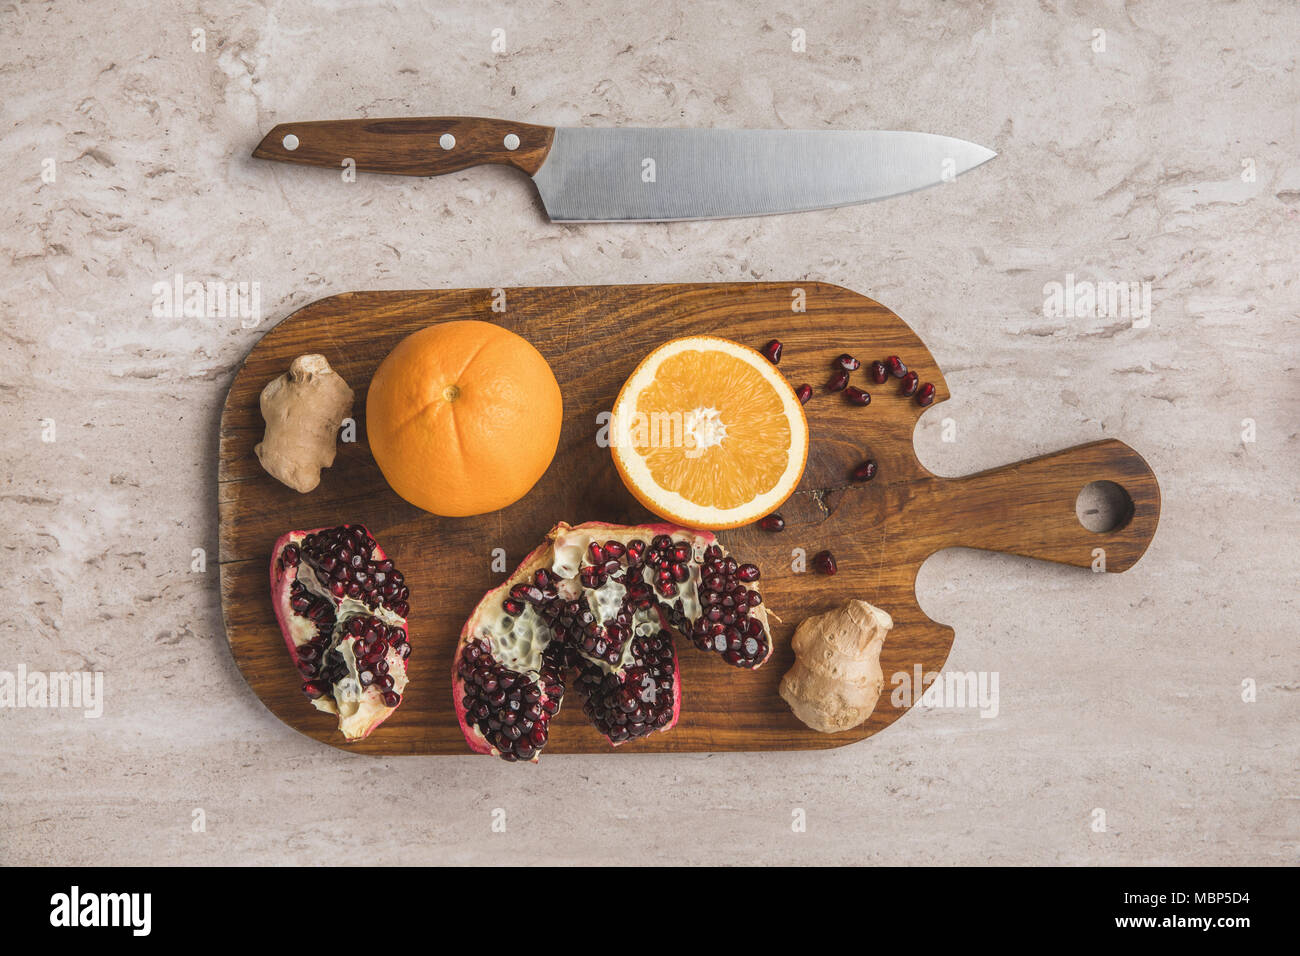 top view of oranges, pomegranate and ginger on cutting board  - Stock Image